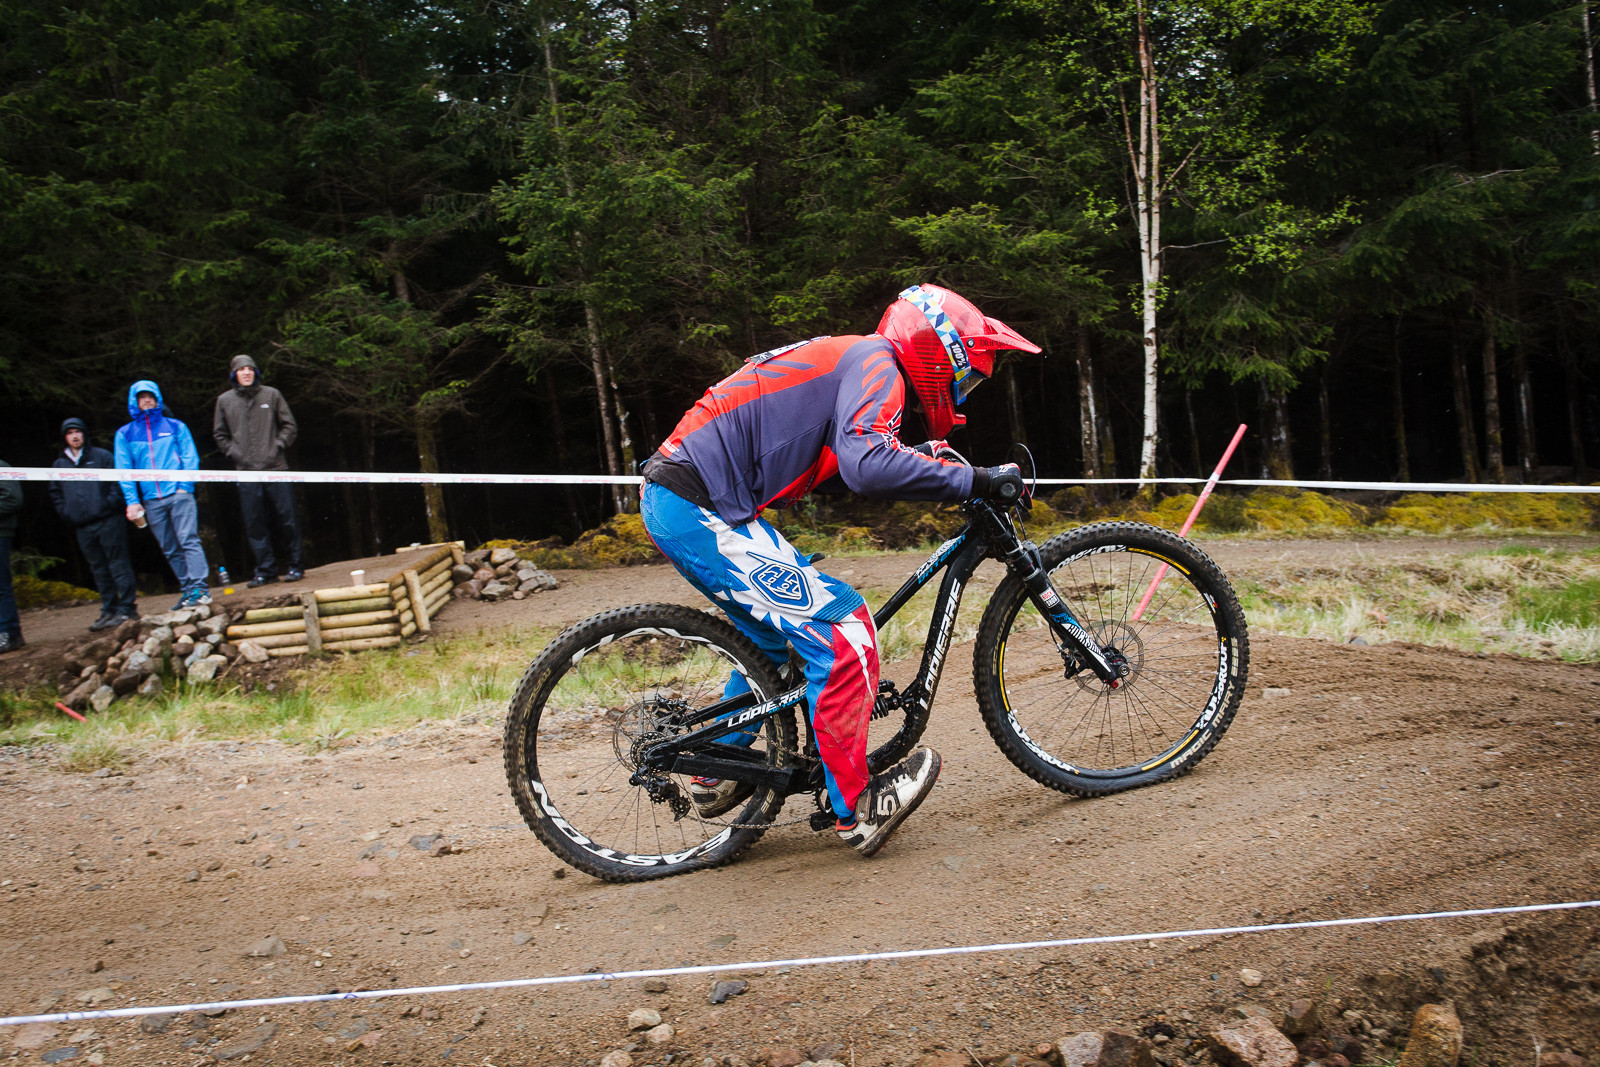 G-Out Fort William BDS - Lapierre Team DH - G-Out Project - Fort William BDS 2015 - Mountain Biking Pictures - Vital MTB